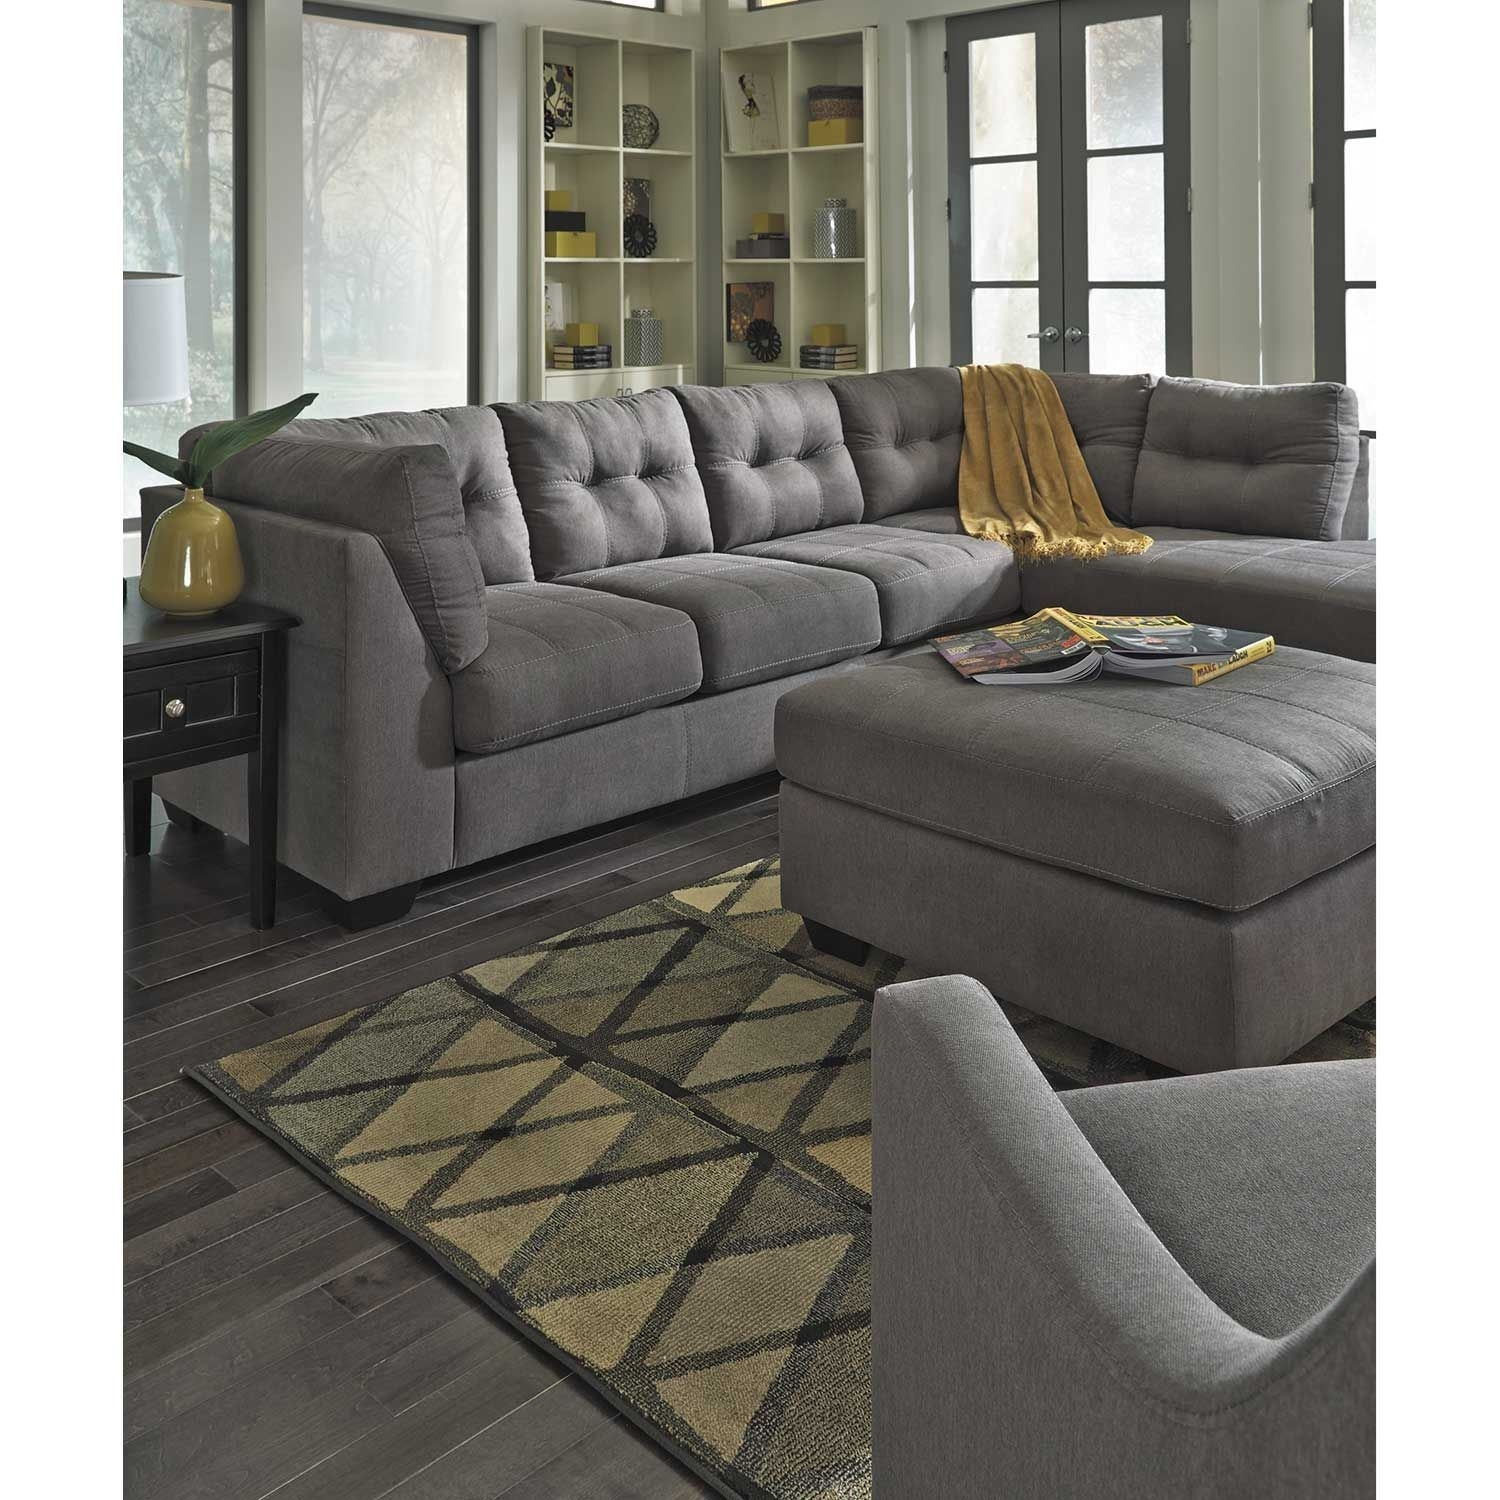 Maier Charcoal 2 Piece Sectional With Laf Chaise | 4520016/67 intended for Arrowmask 2 Piece Sectionals With Laf Chaise (Image 19 of 30)